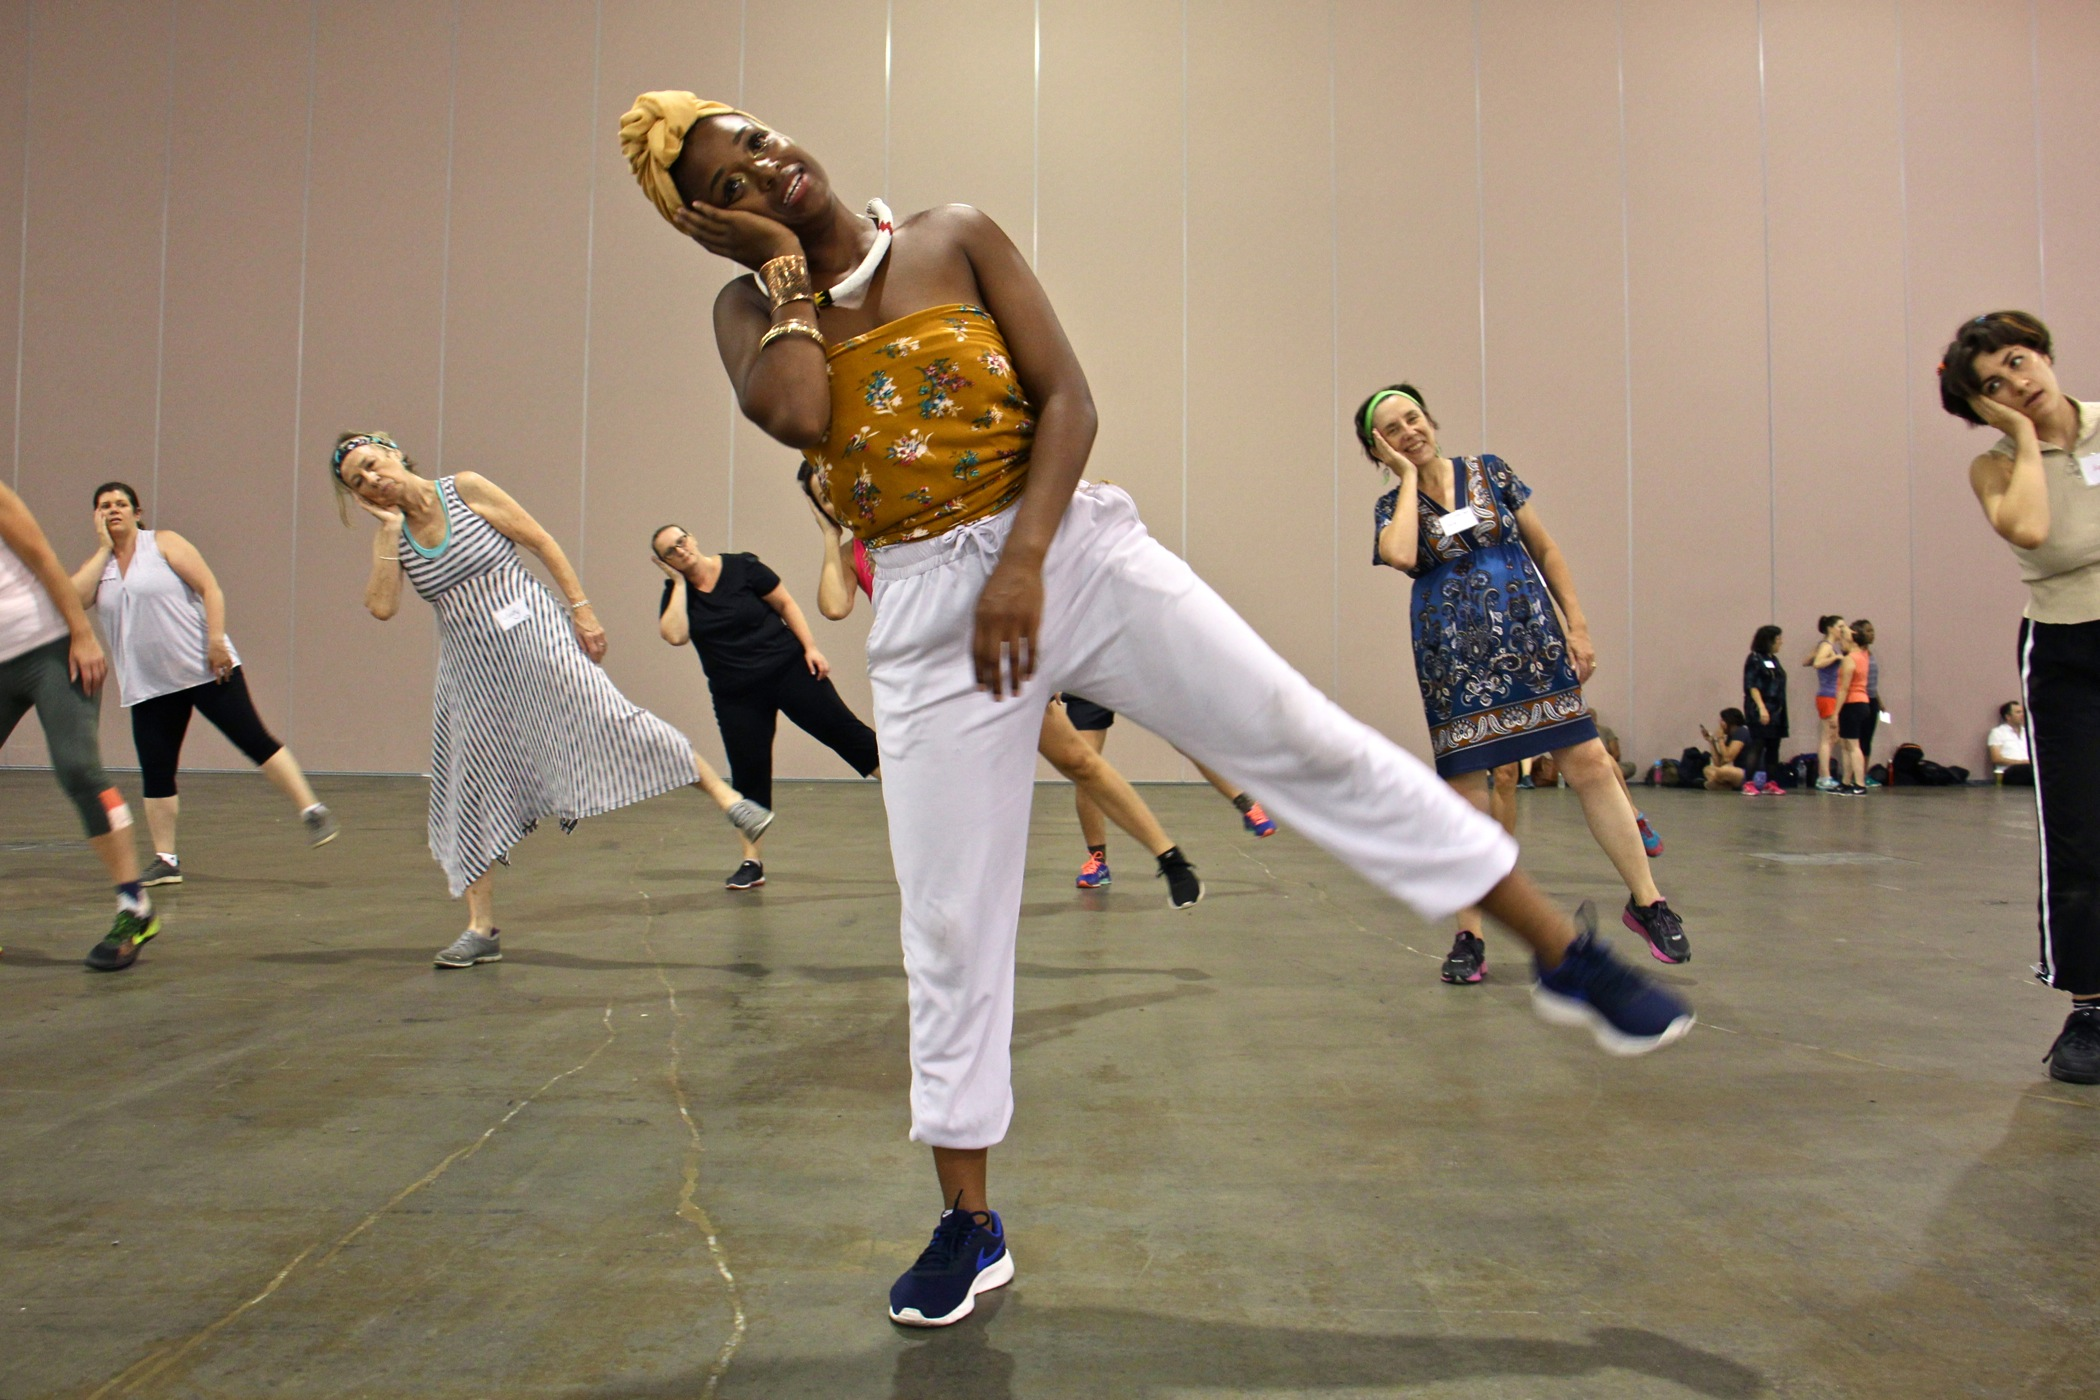 """Rehearsal assistant Sanchel Brown leads a group warmup during rehearsal for """"Le Super Grand Continental,"""" which will be performed by 175 volunteer dancers at the steps of the Philadelphia Art Museum during the Fringe Festival."""